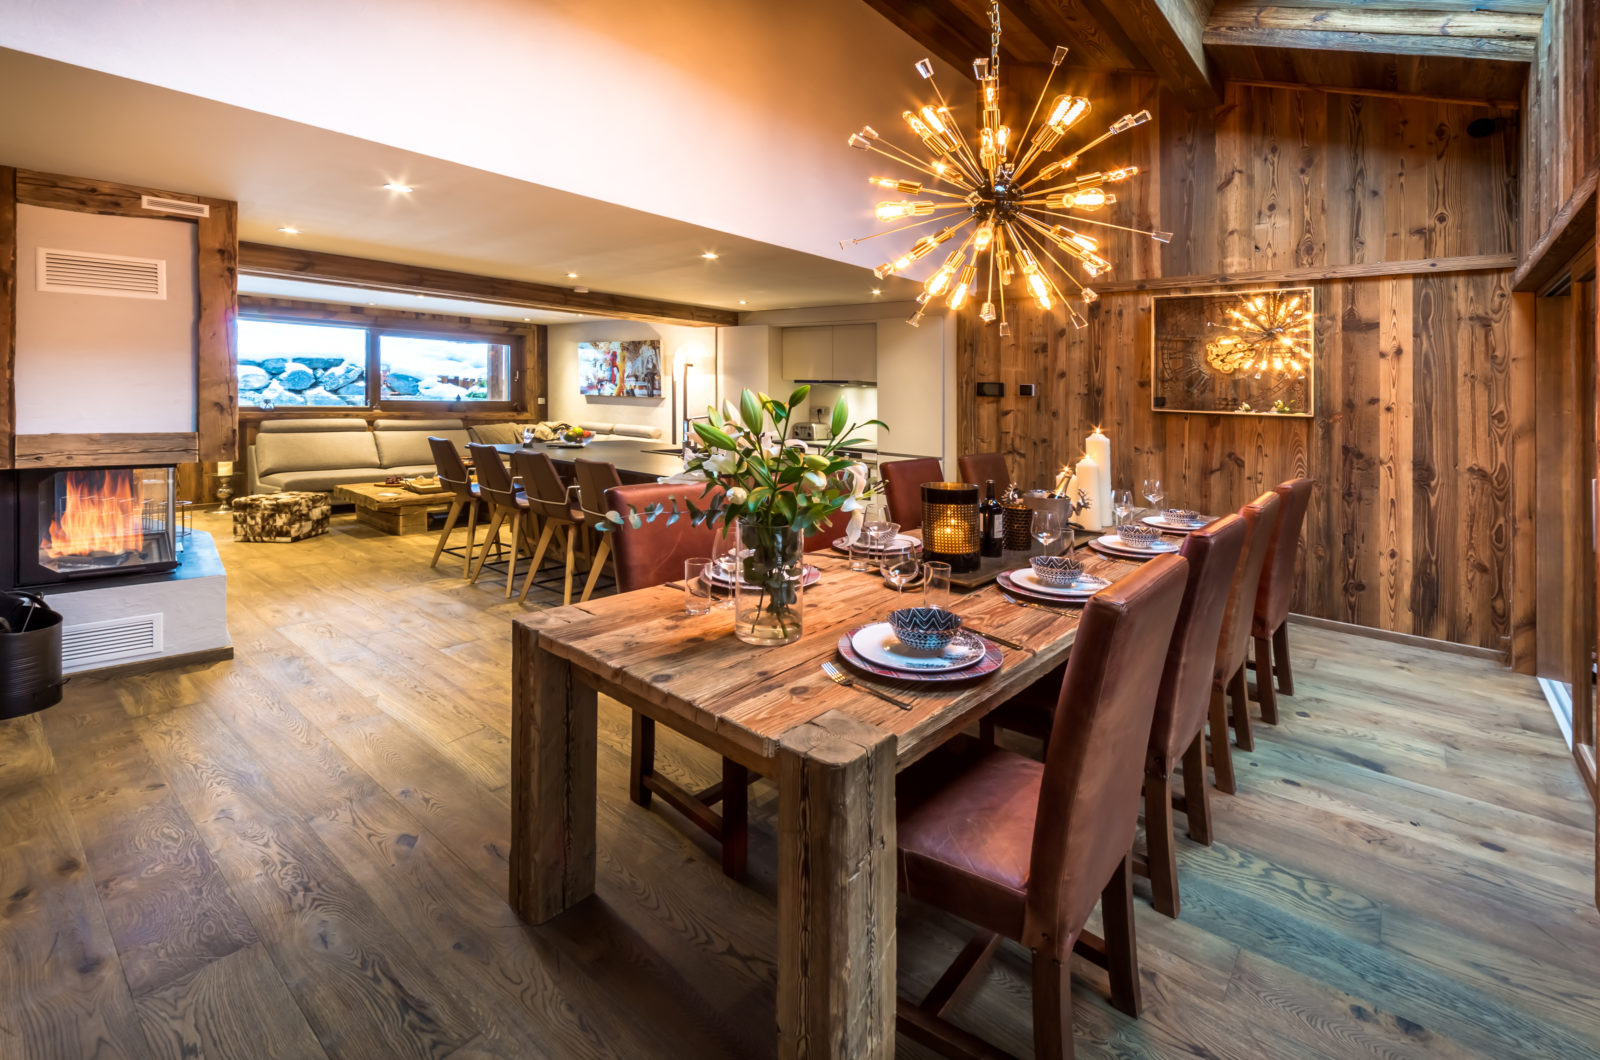 SAMPLE FEATURED ACCOMMODATION: luxury Snowboarders chalet in Morzine